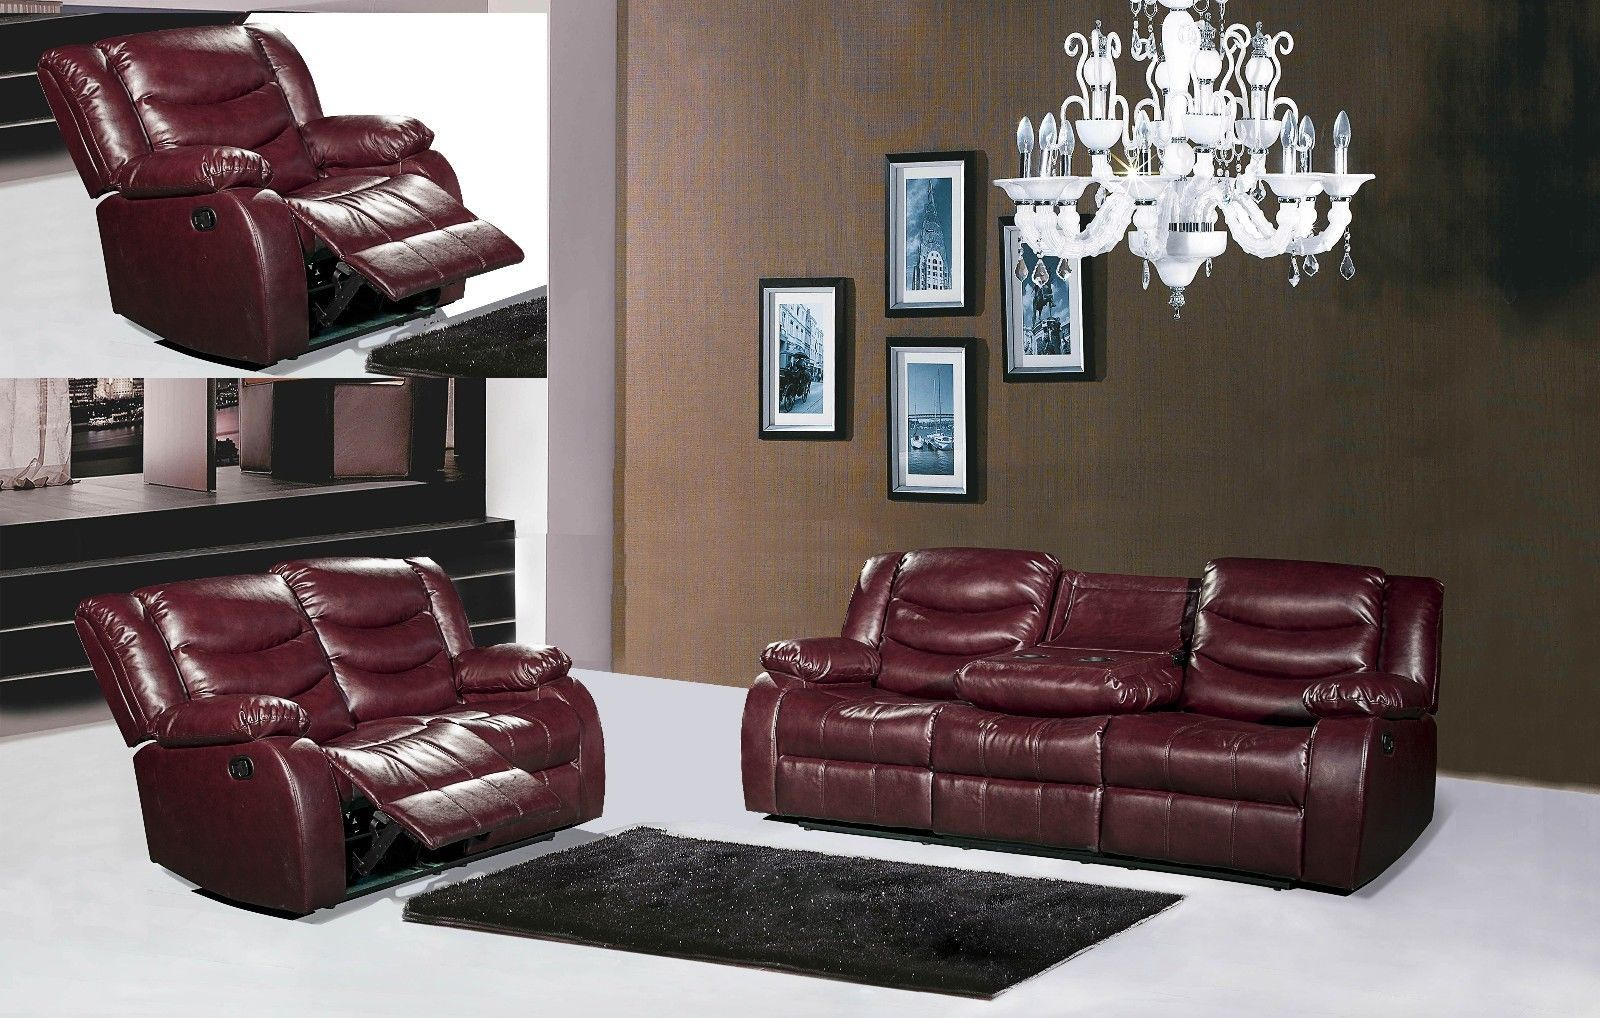 Meridian 644 Bonded Leather Living Room Sofa Burgundy Contemporary Style